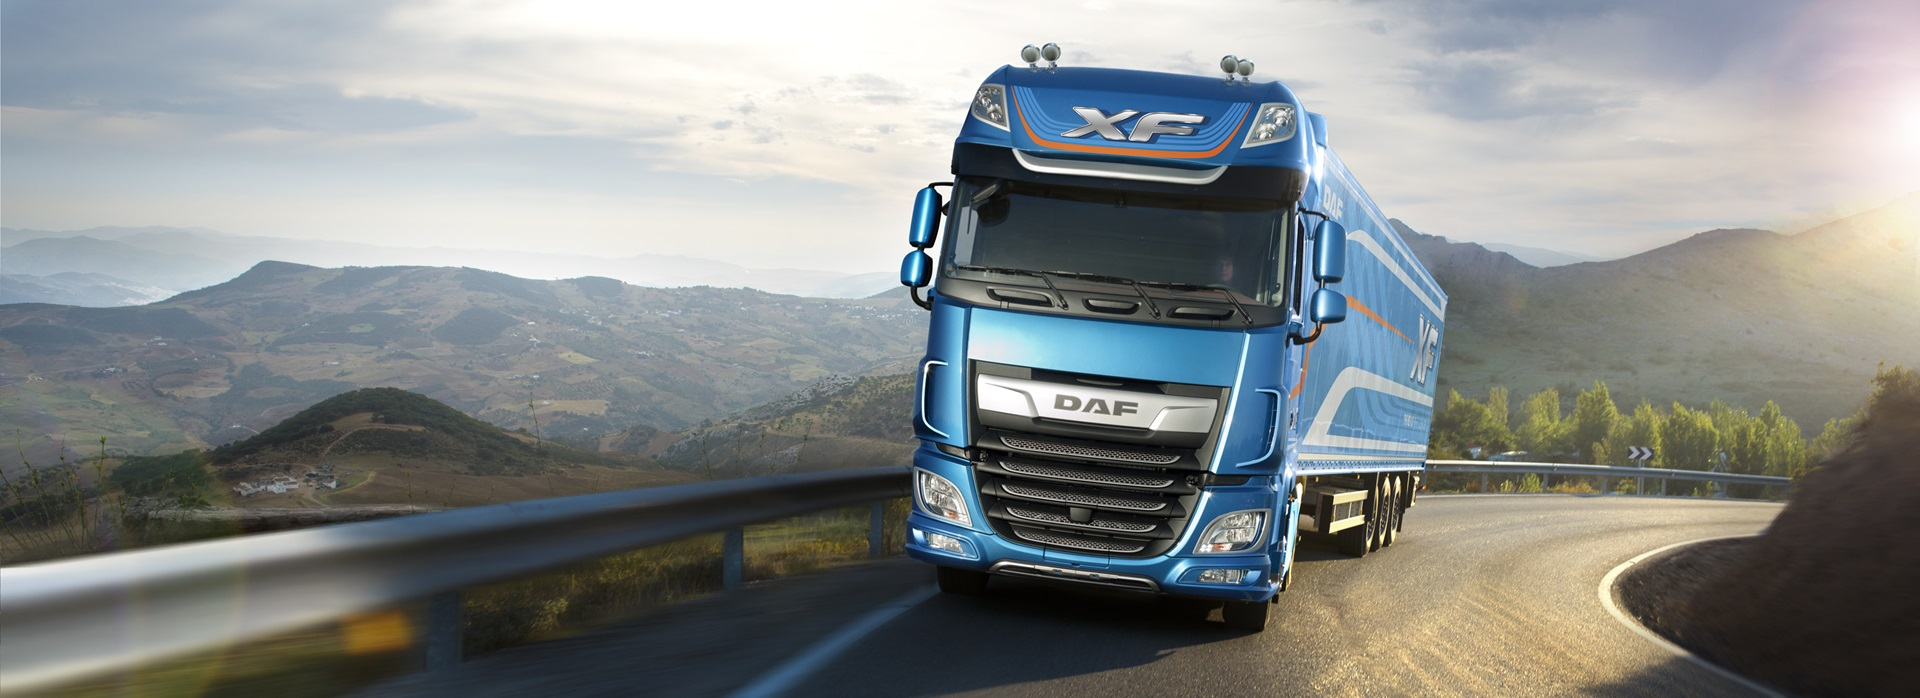 Daf The New Xf Transport Efficiency Visual 101702859